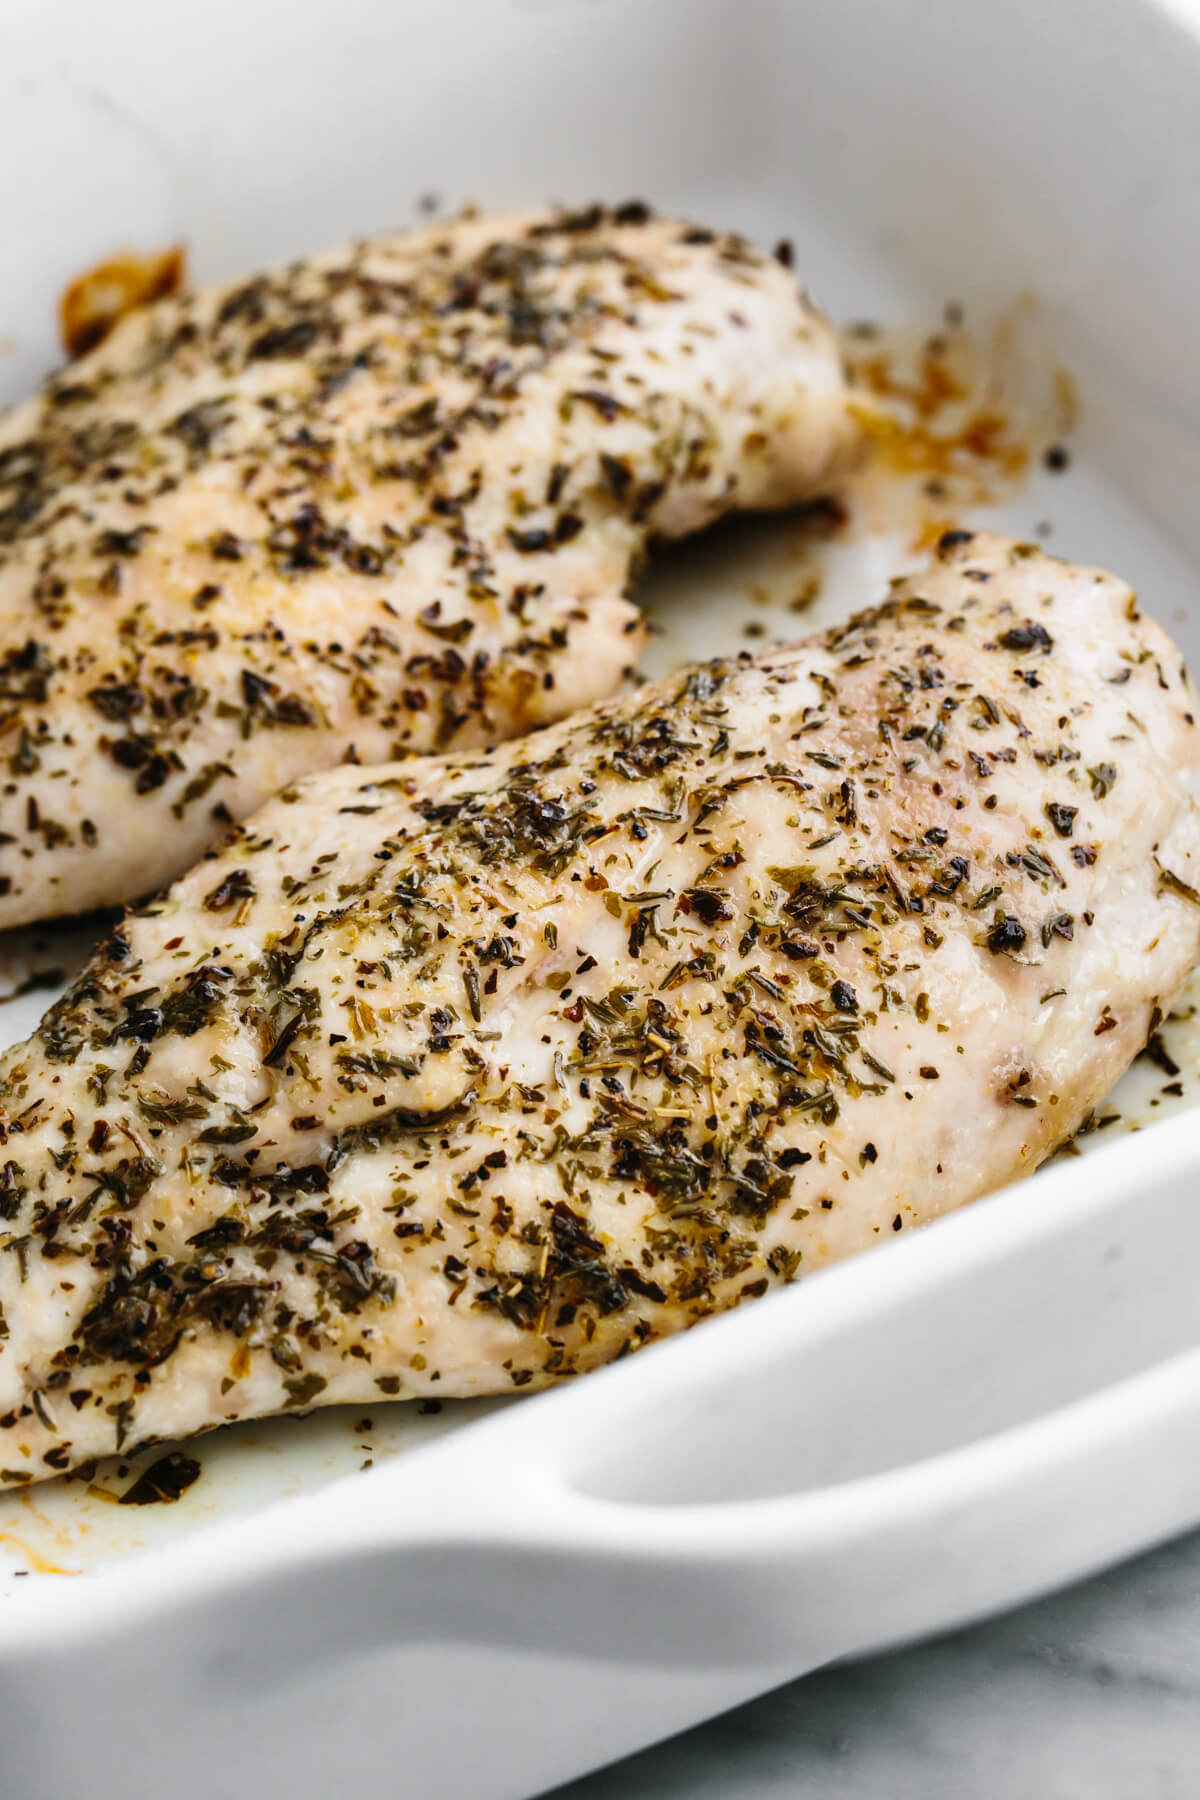 A baking dish with herb baked chicken breasts.